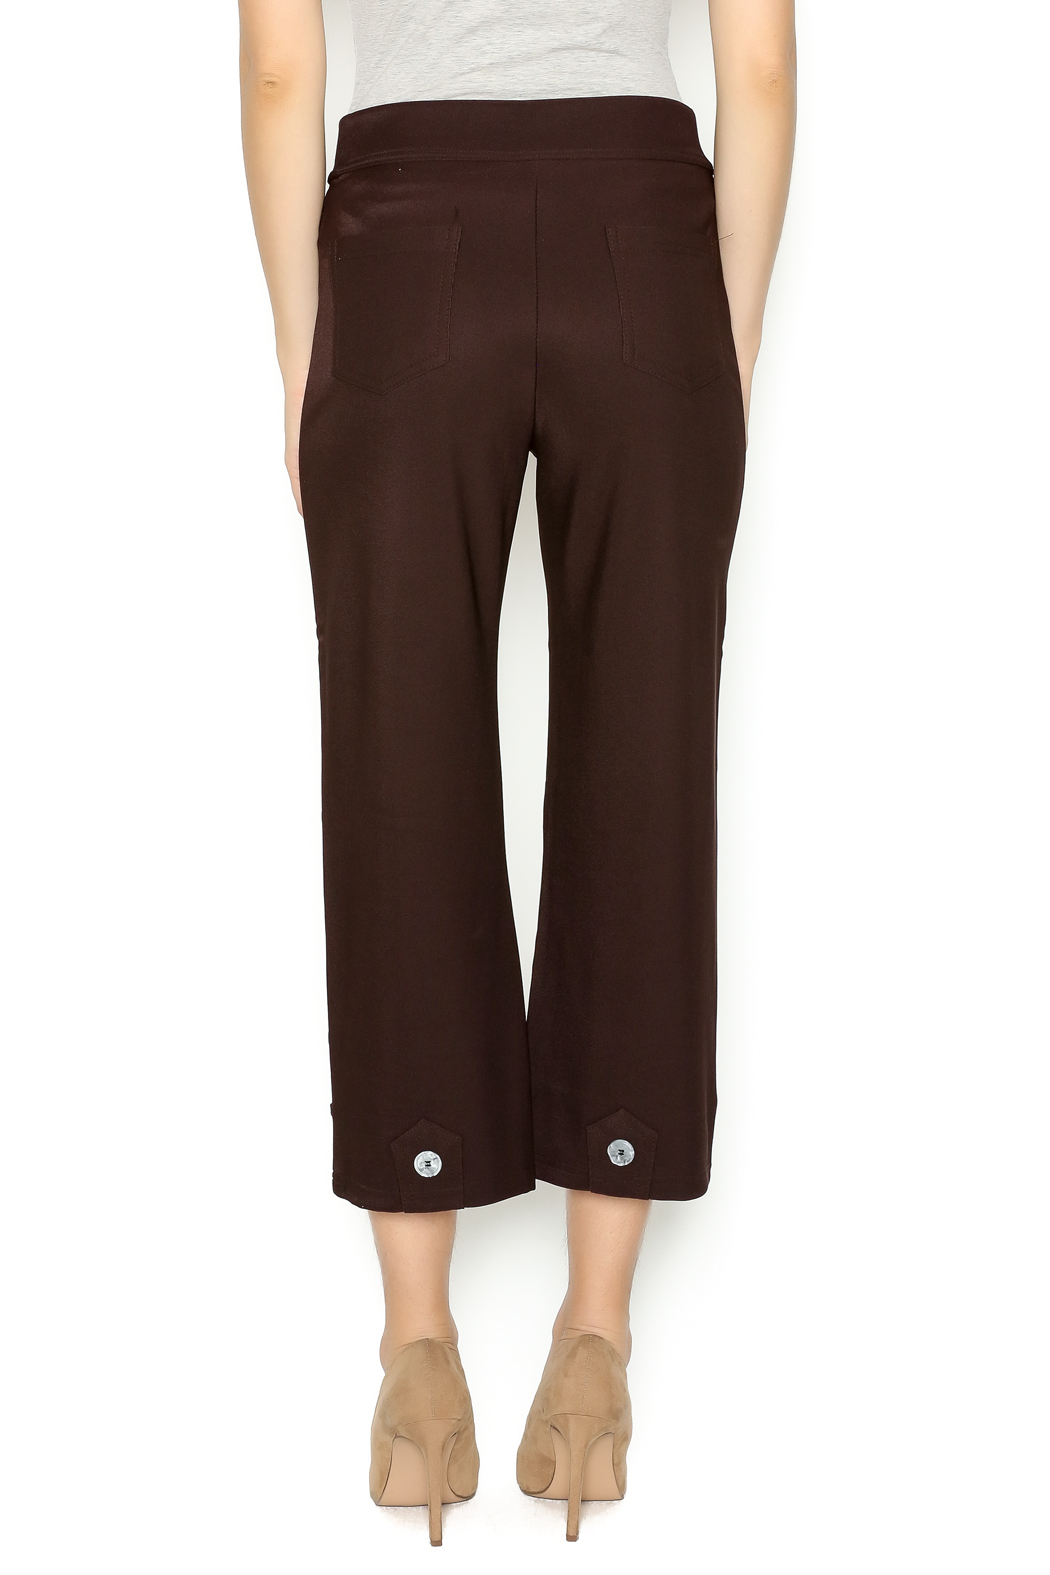 Talk of the Walk 4-Button Boot Pant - Back Cropped Image